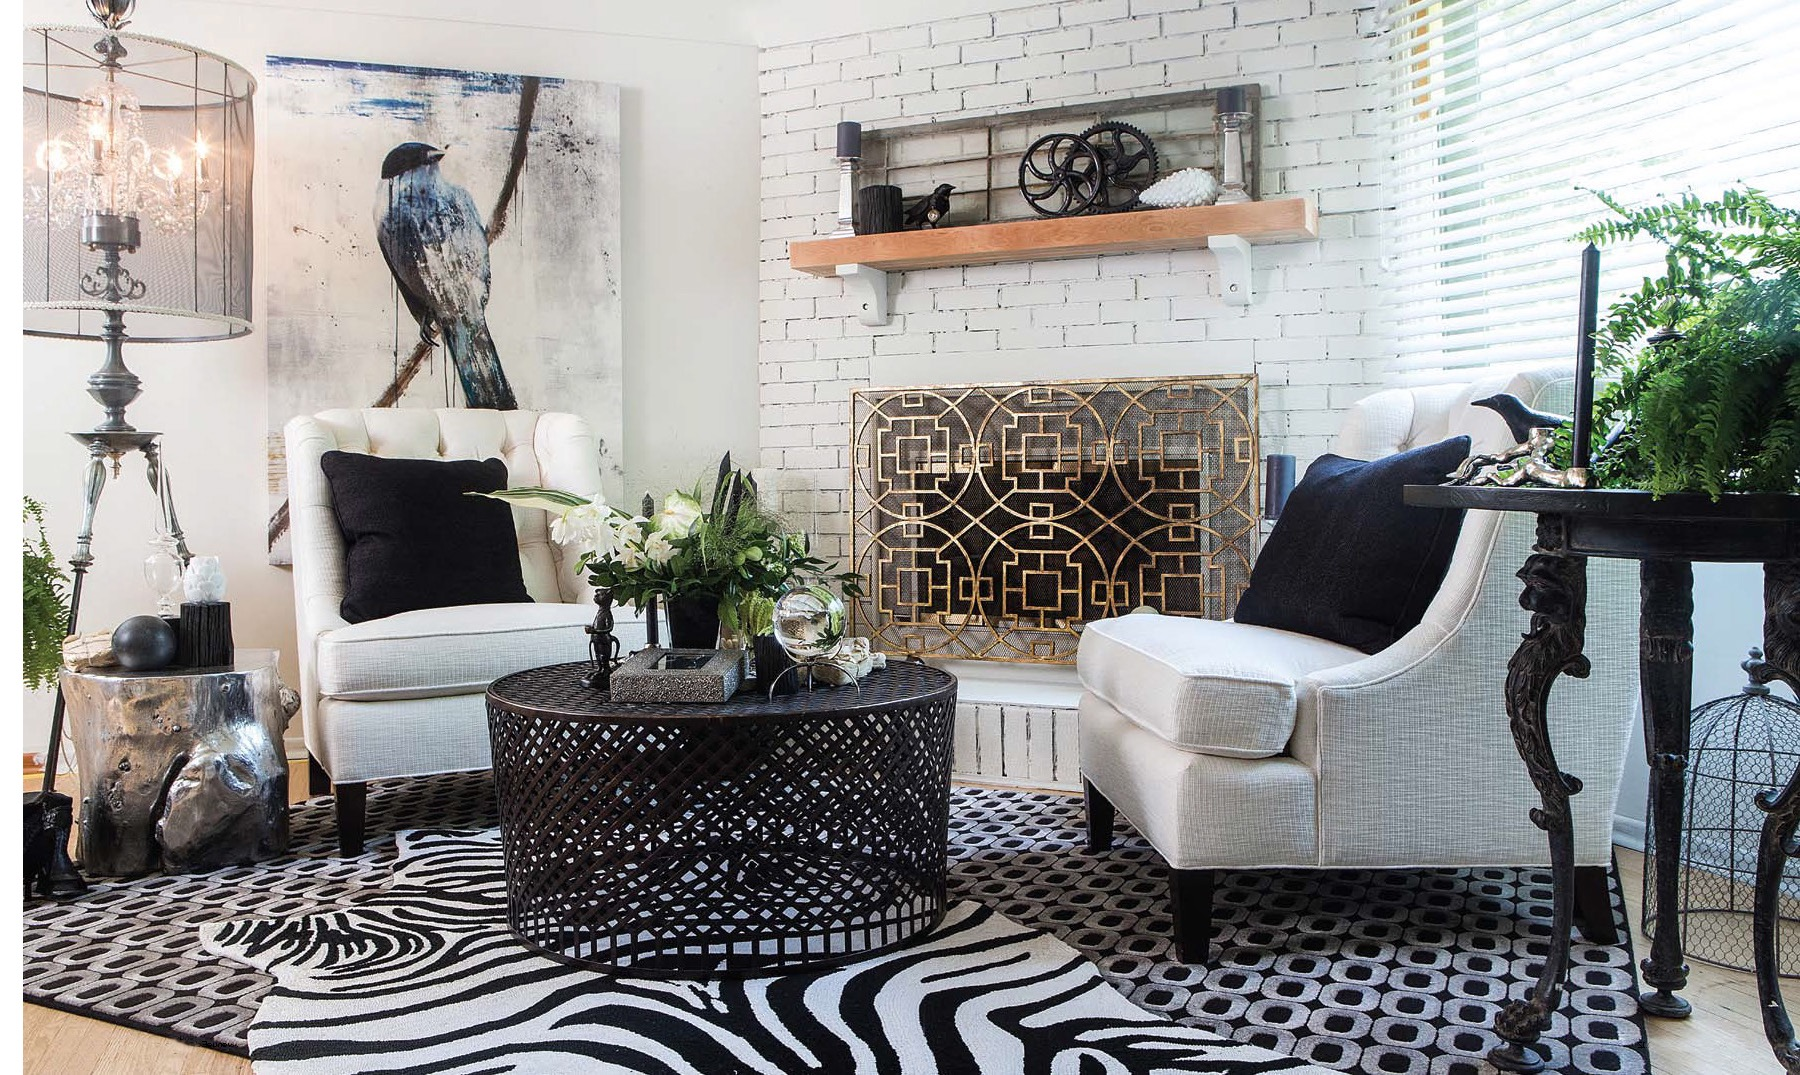 Black And White Ethnical Living Room Decor Style (Image 2 of 15)